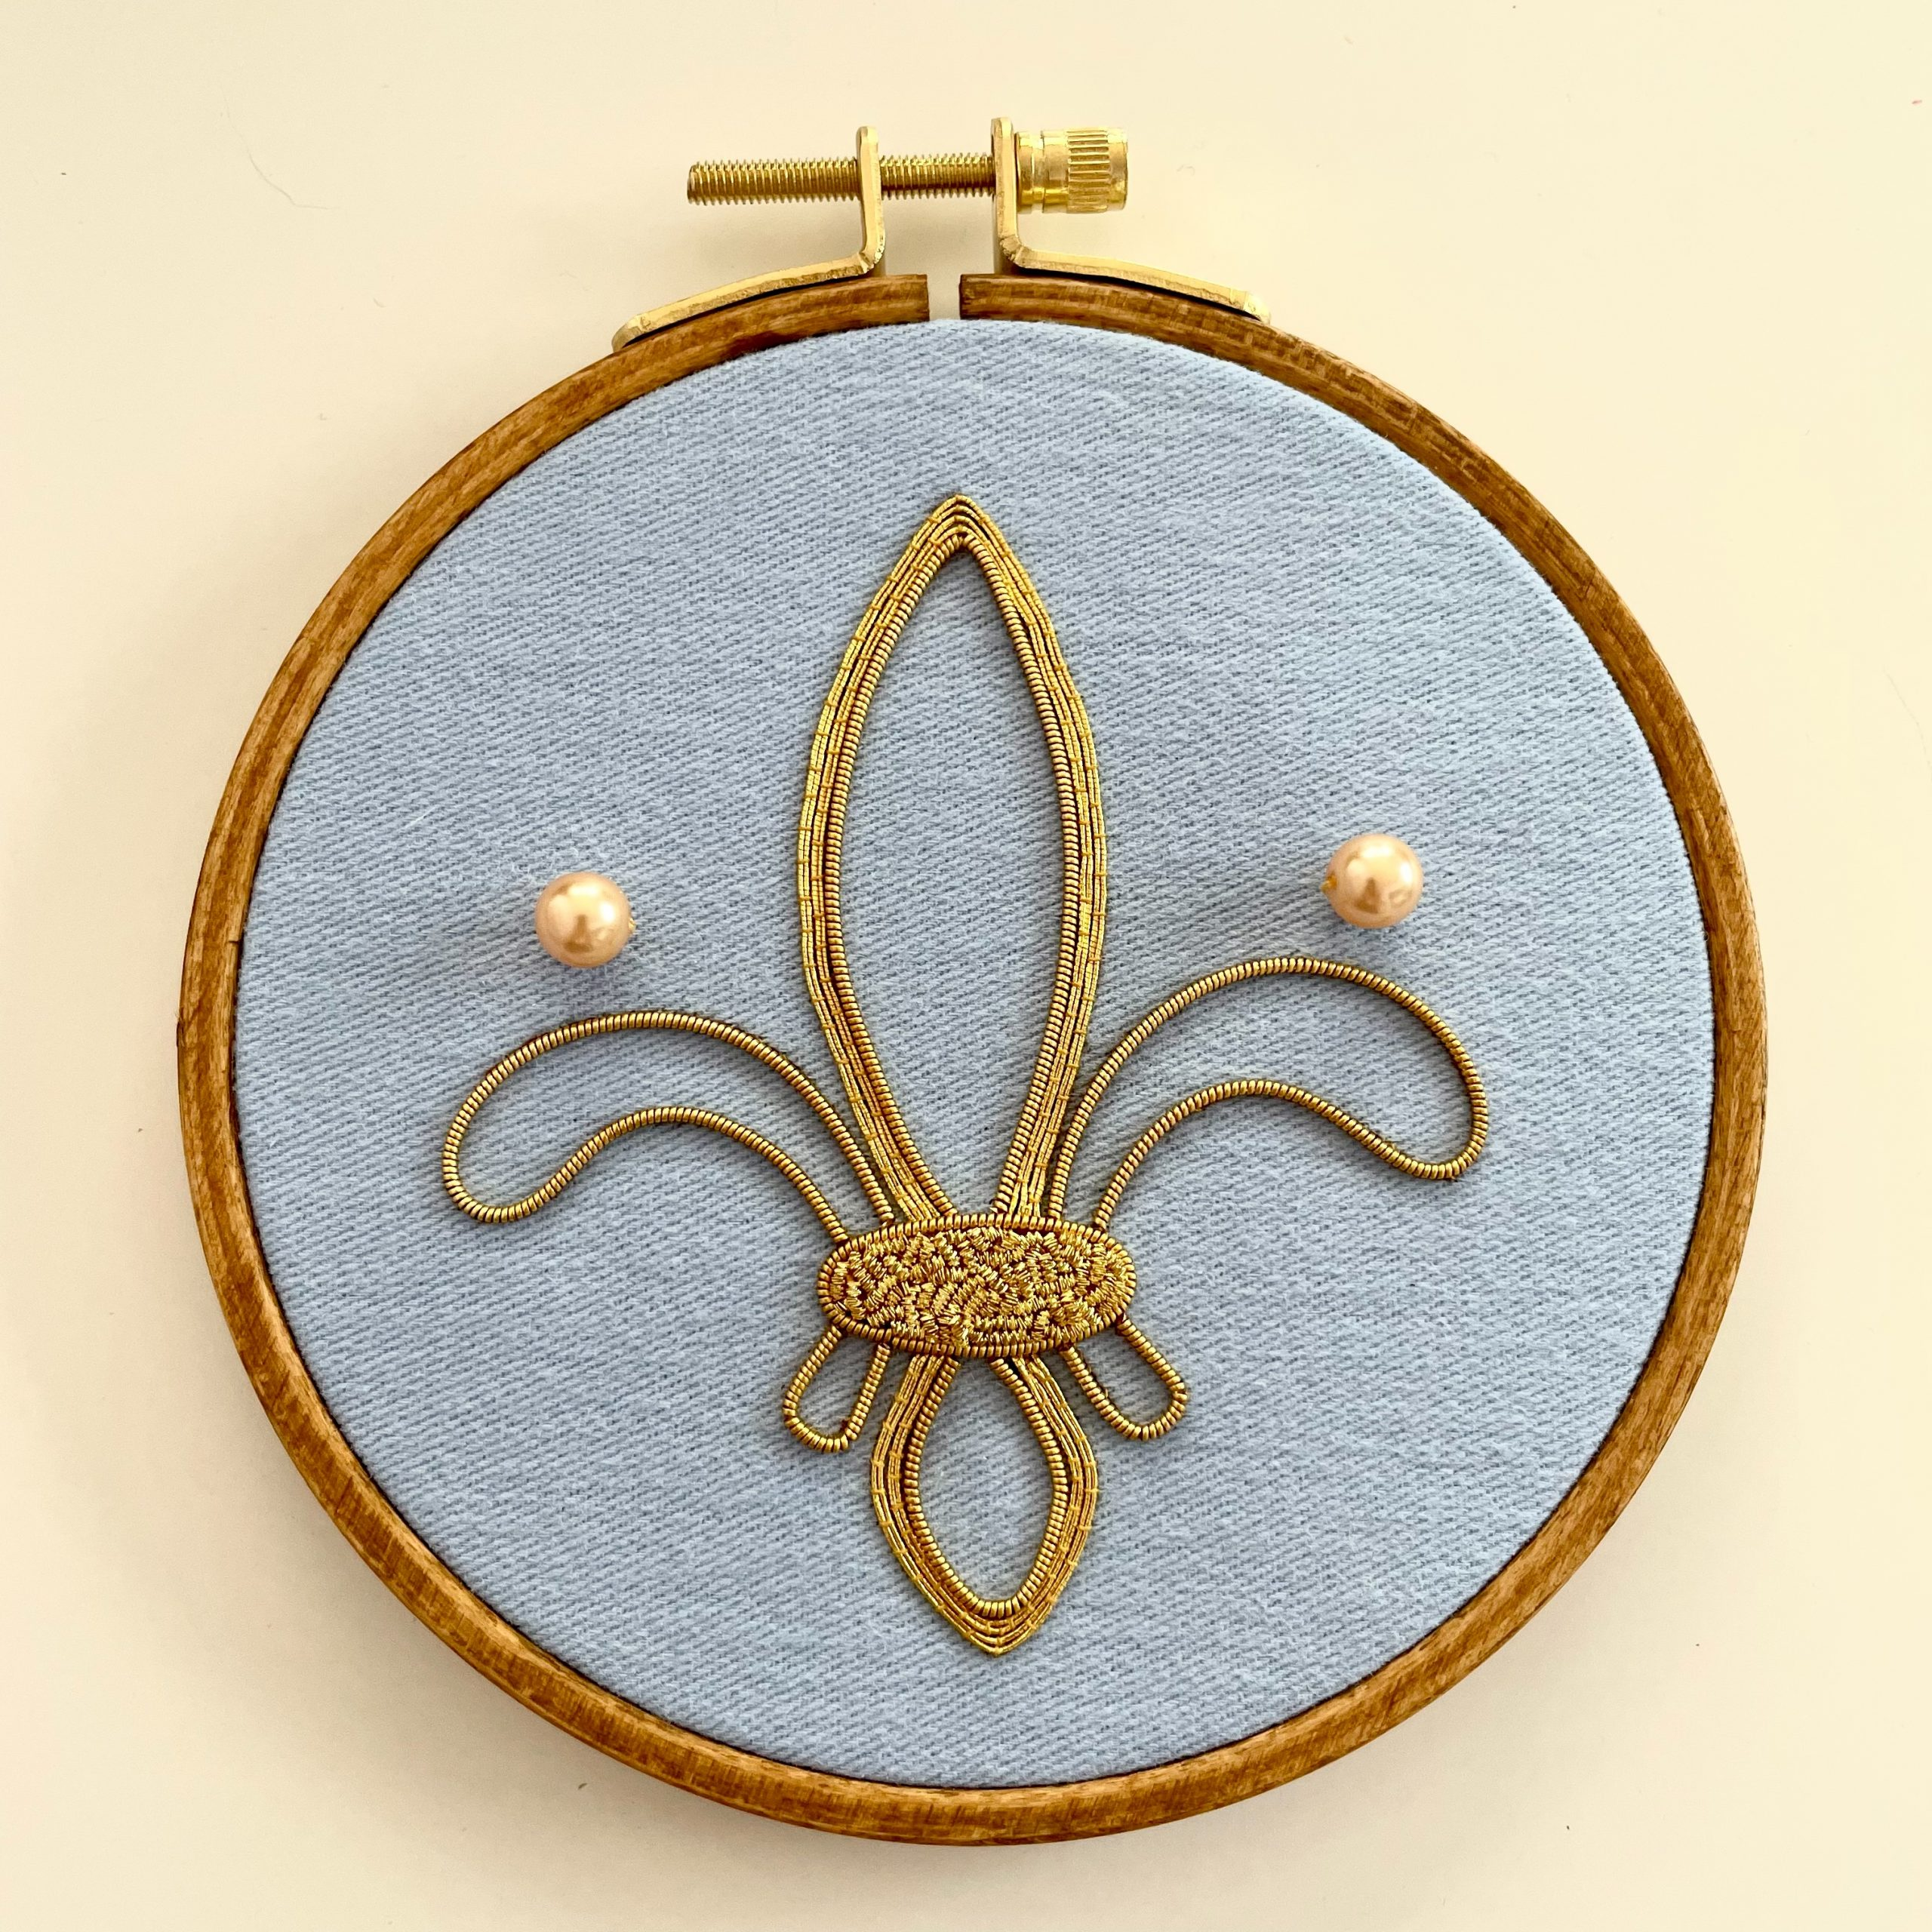 Technique Taster Goldwork by Chloé Annick Ginsburg, CA